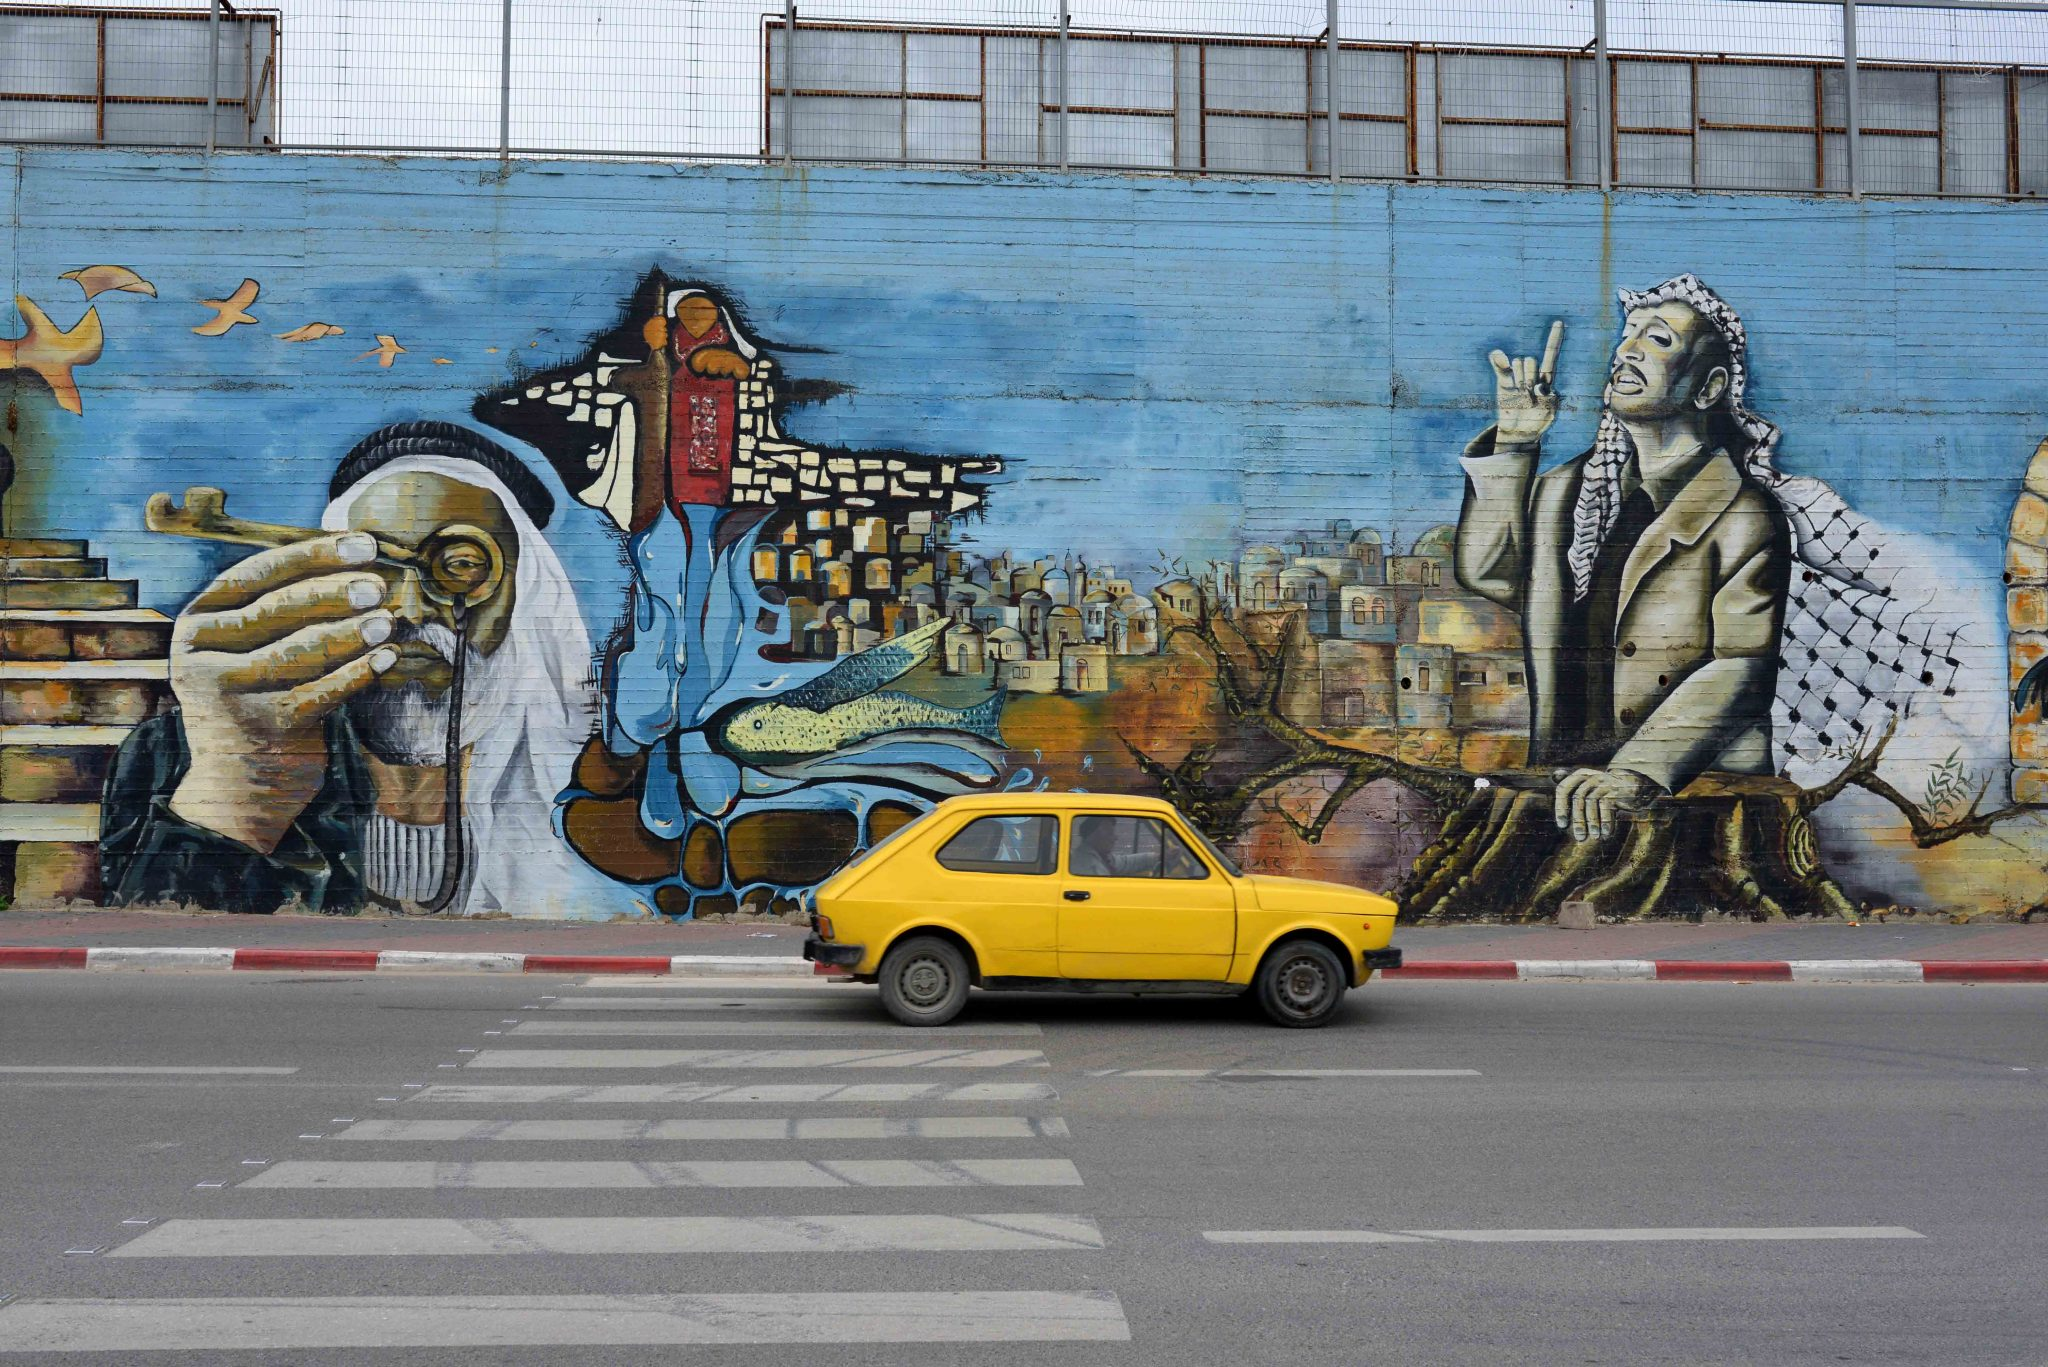 Big Mural in Nablus